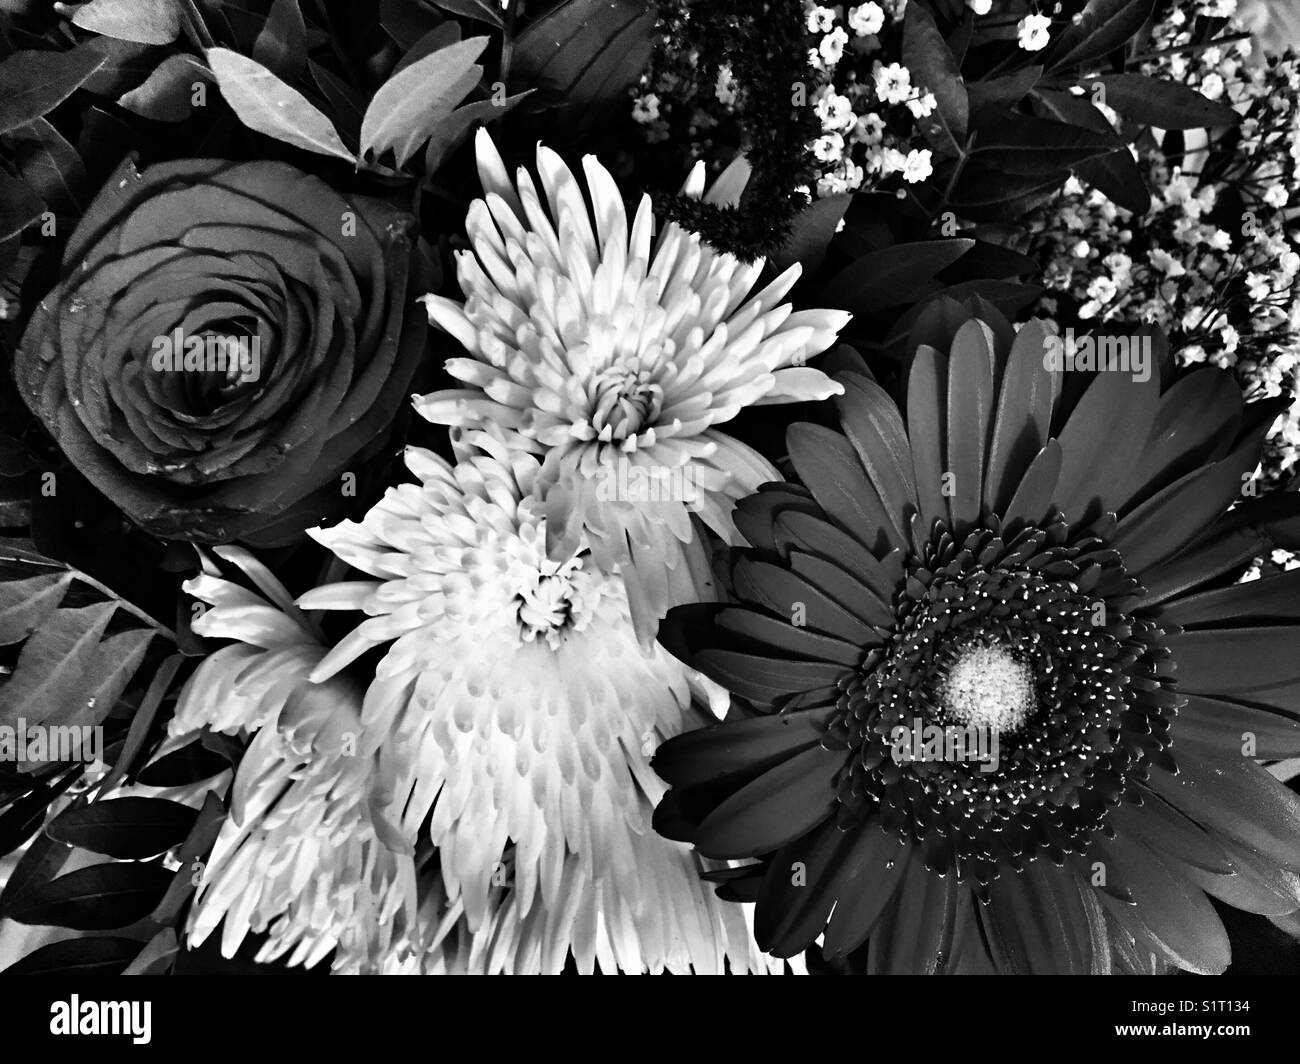 Flowers bouquet black and white stock photos images alamy black and white flowers bouquet 2017 stock image izmirmasajfo